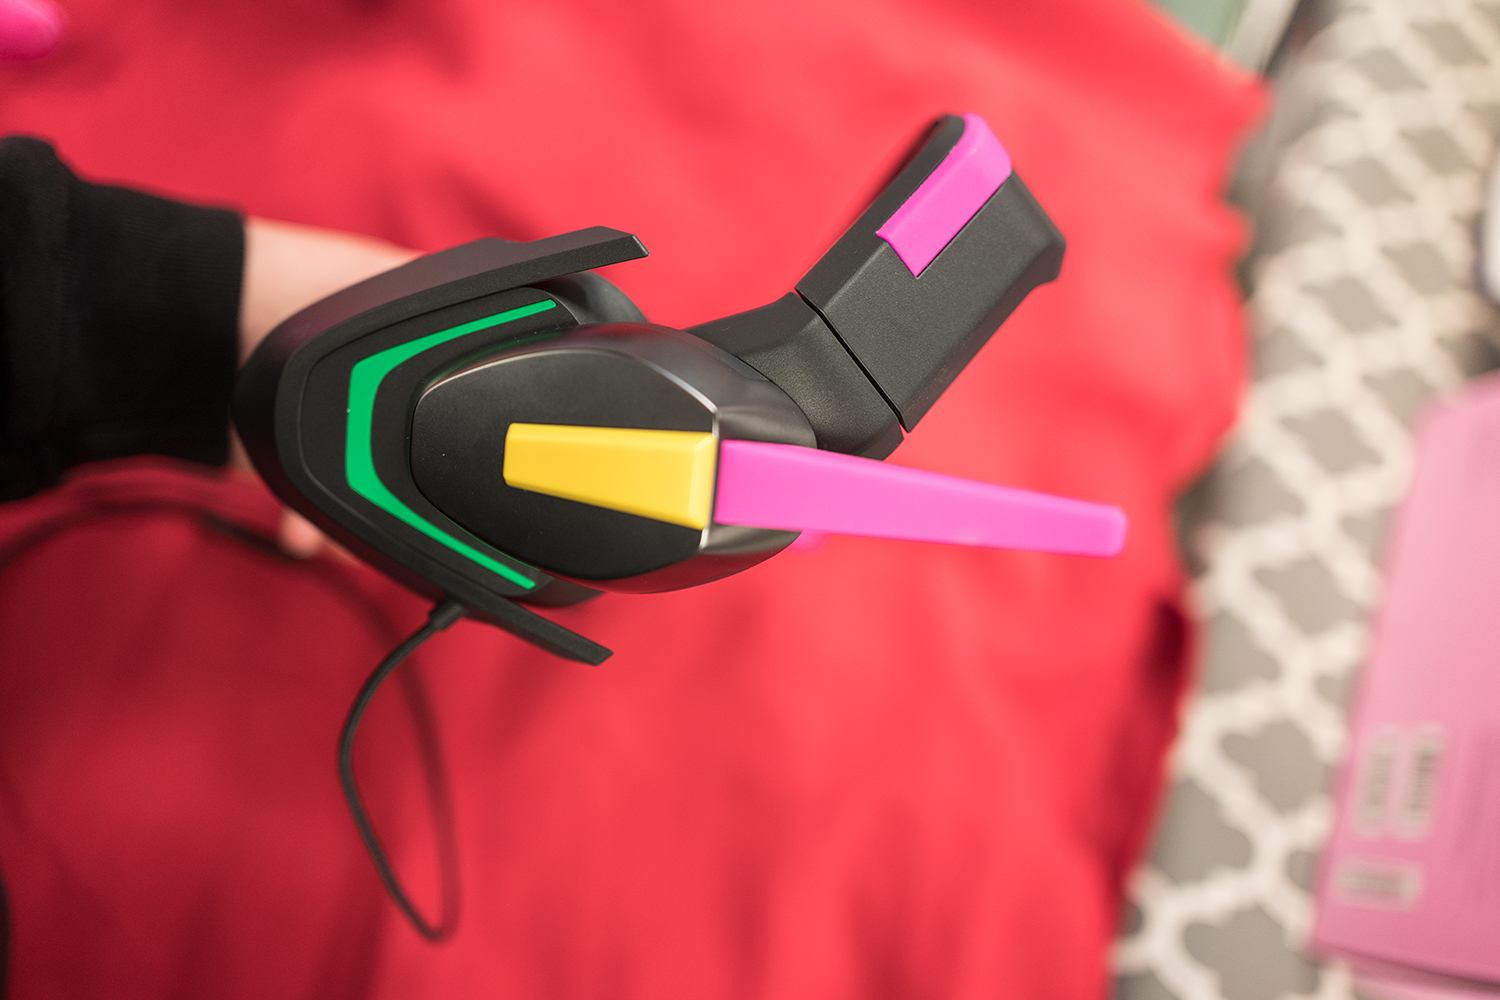 Side view of the headset